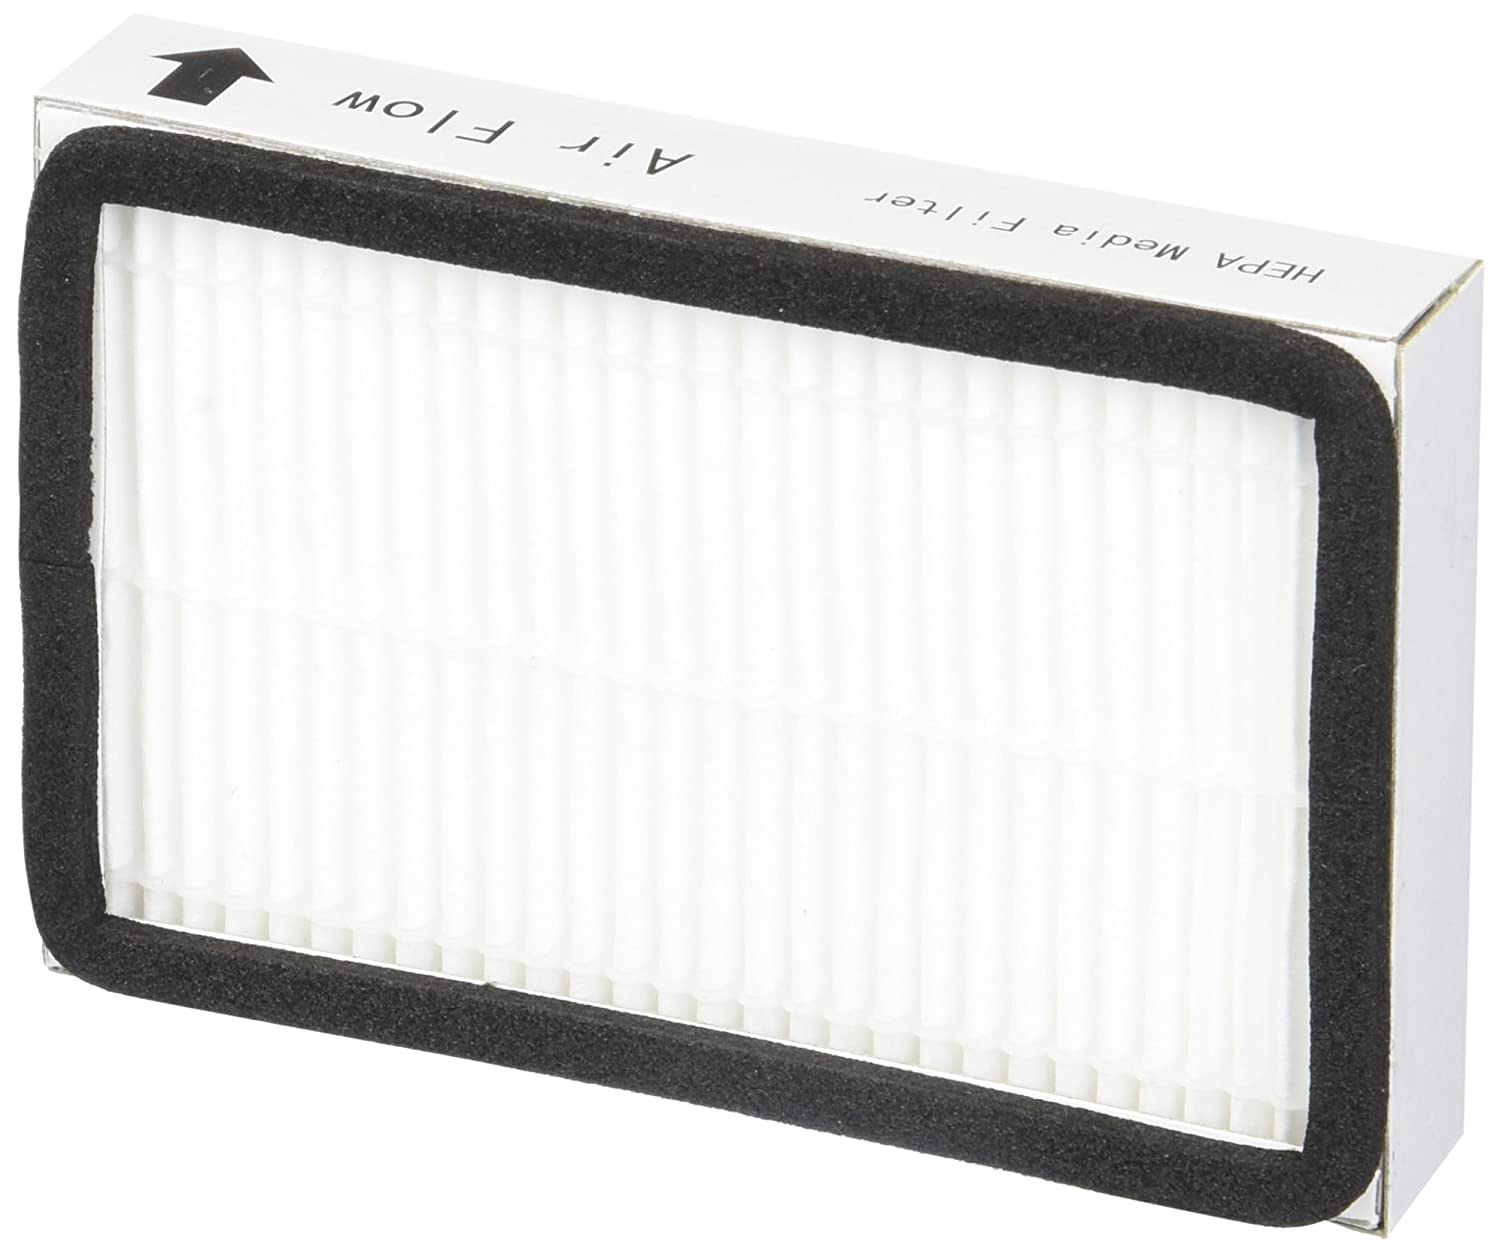 Kenmore 86880 EF-2 Exhaust HEPA Vacuum Filter; Compare to Sears Kenmore Part# 86880 (or 20-86880), 40320, EF2 & Panasonic Part # MC-V194H (MCV194H); Designed & Engineered by Crucial Vacuum